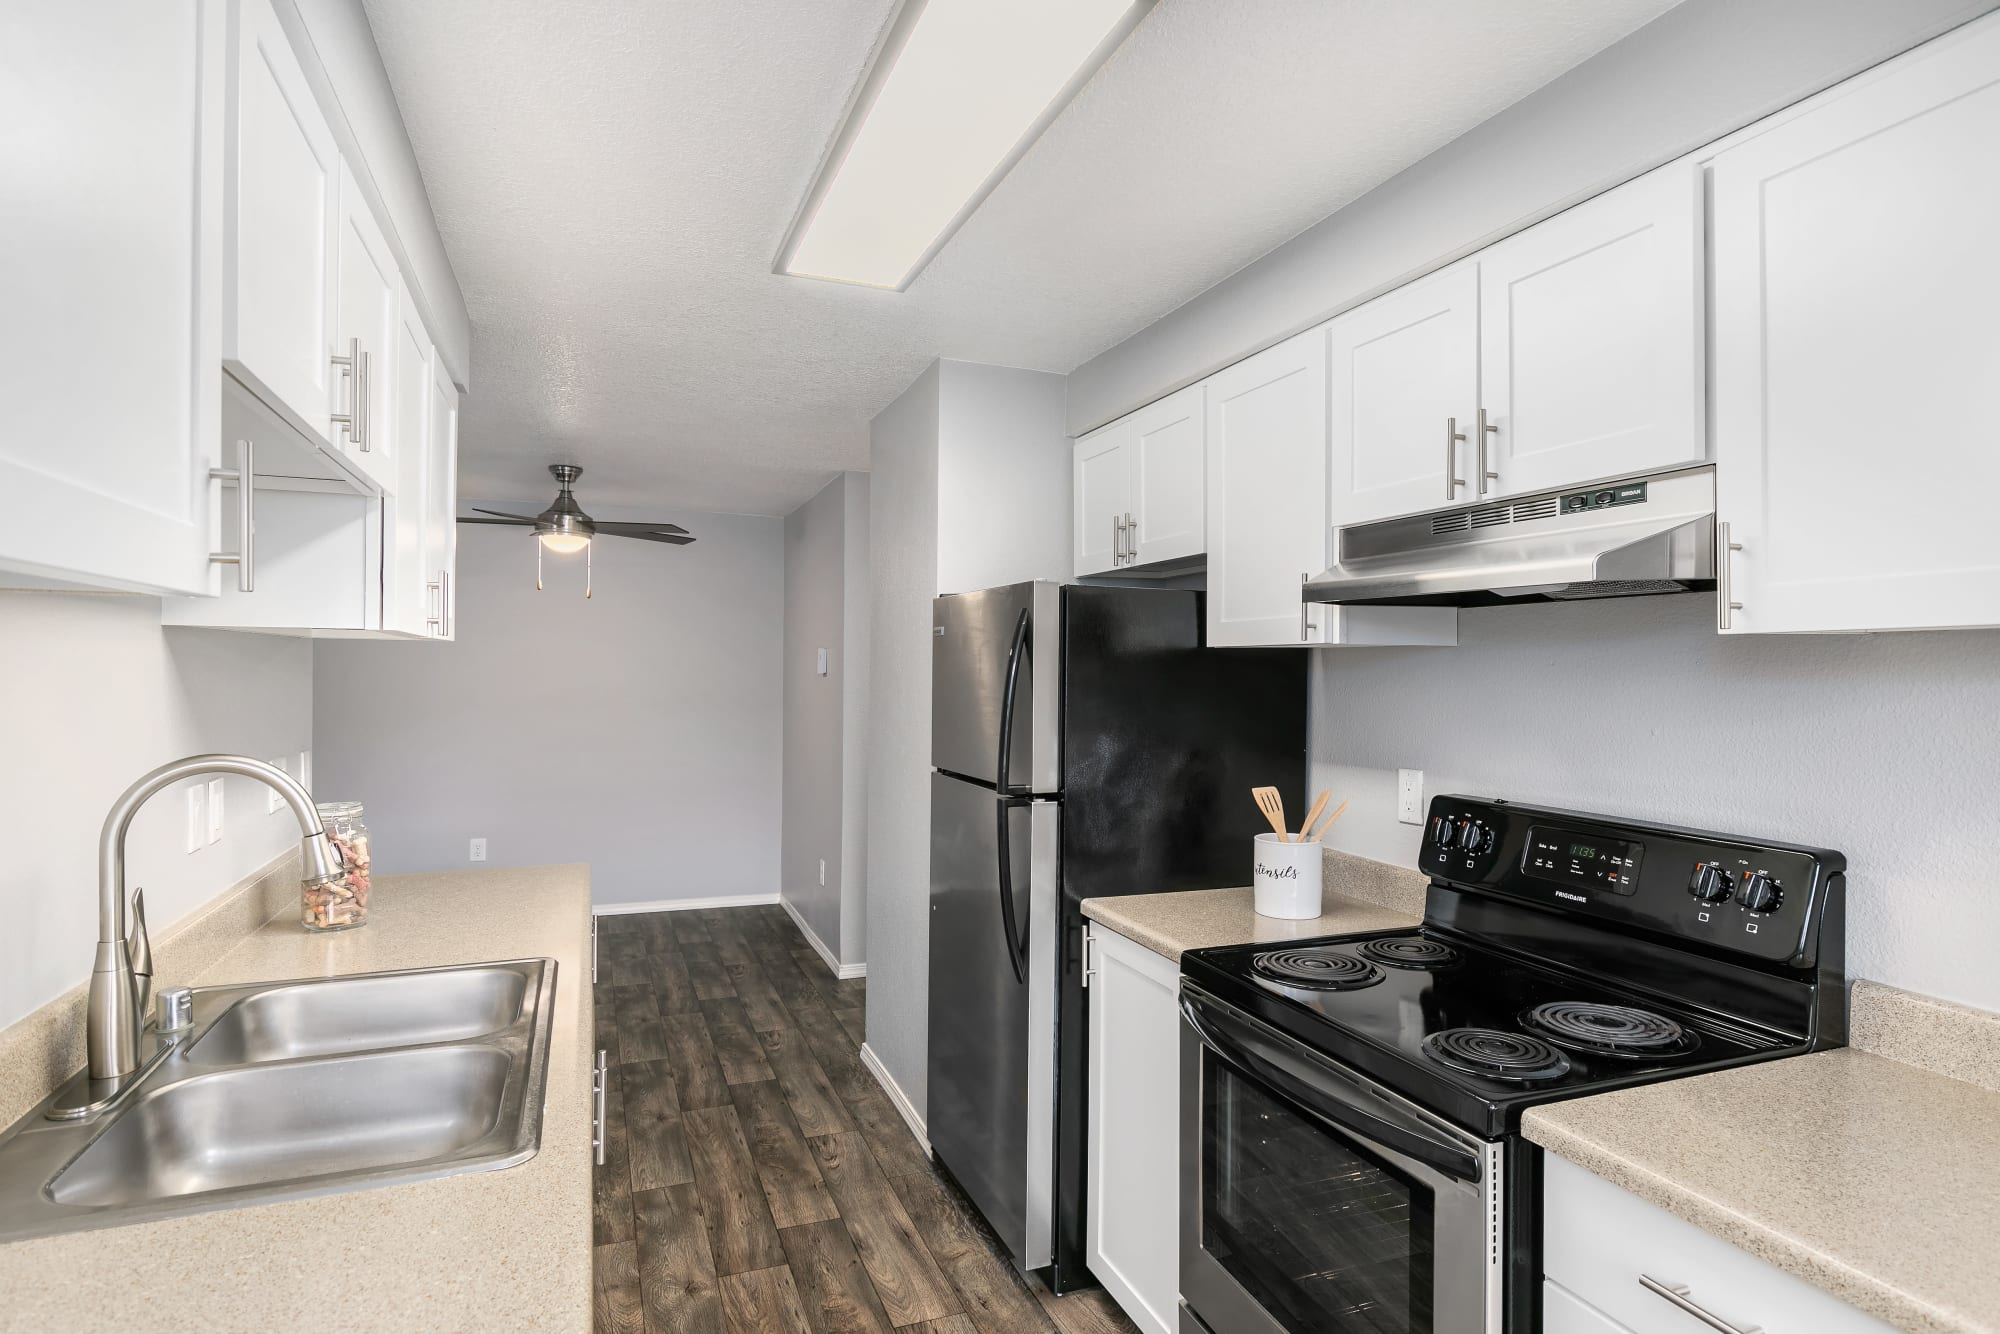 Newly renovated white kitchen with stainless steel appliances at Walnut Grove Landing Apartments in Vancouver, WA